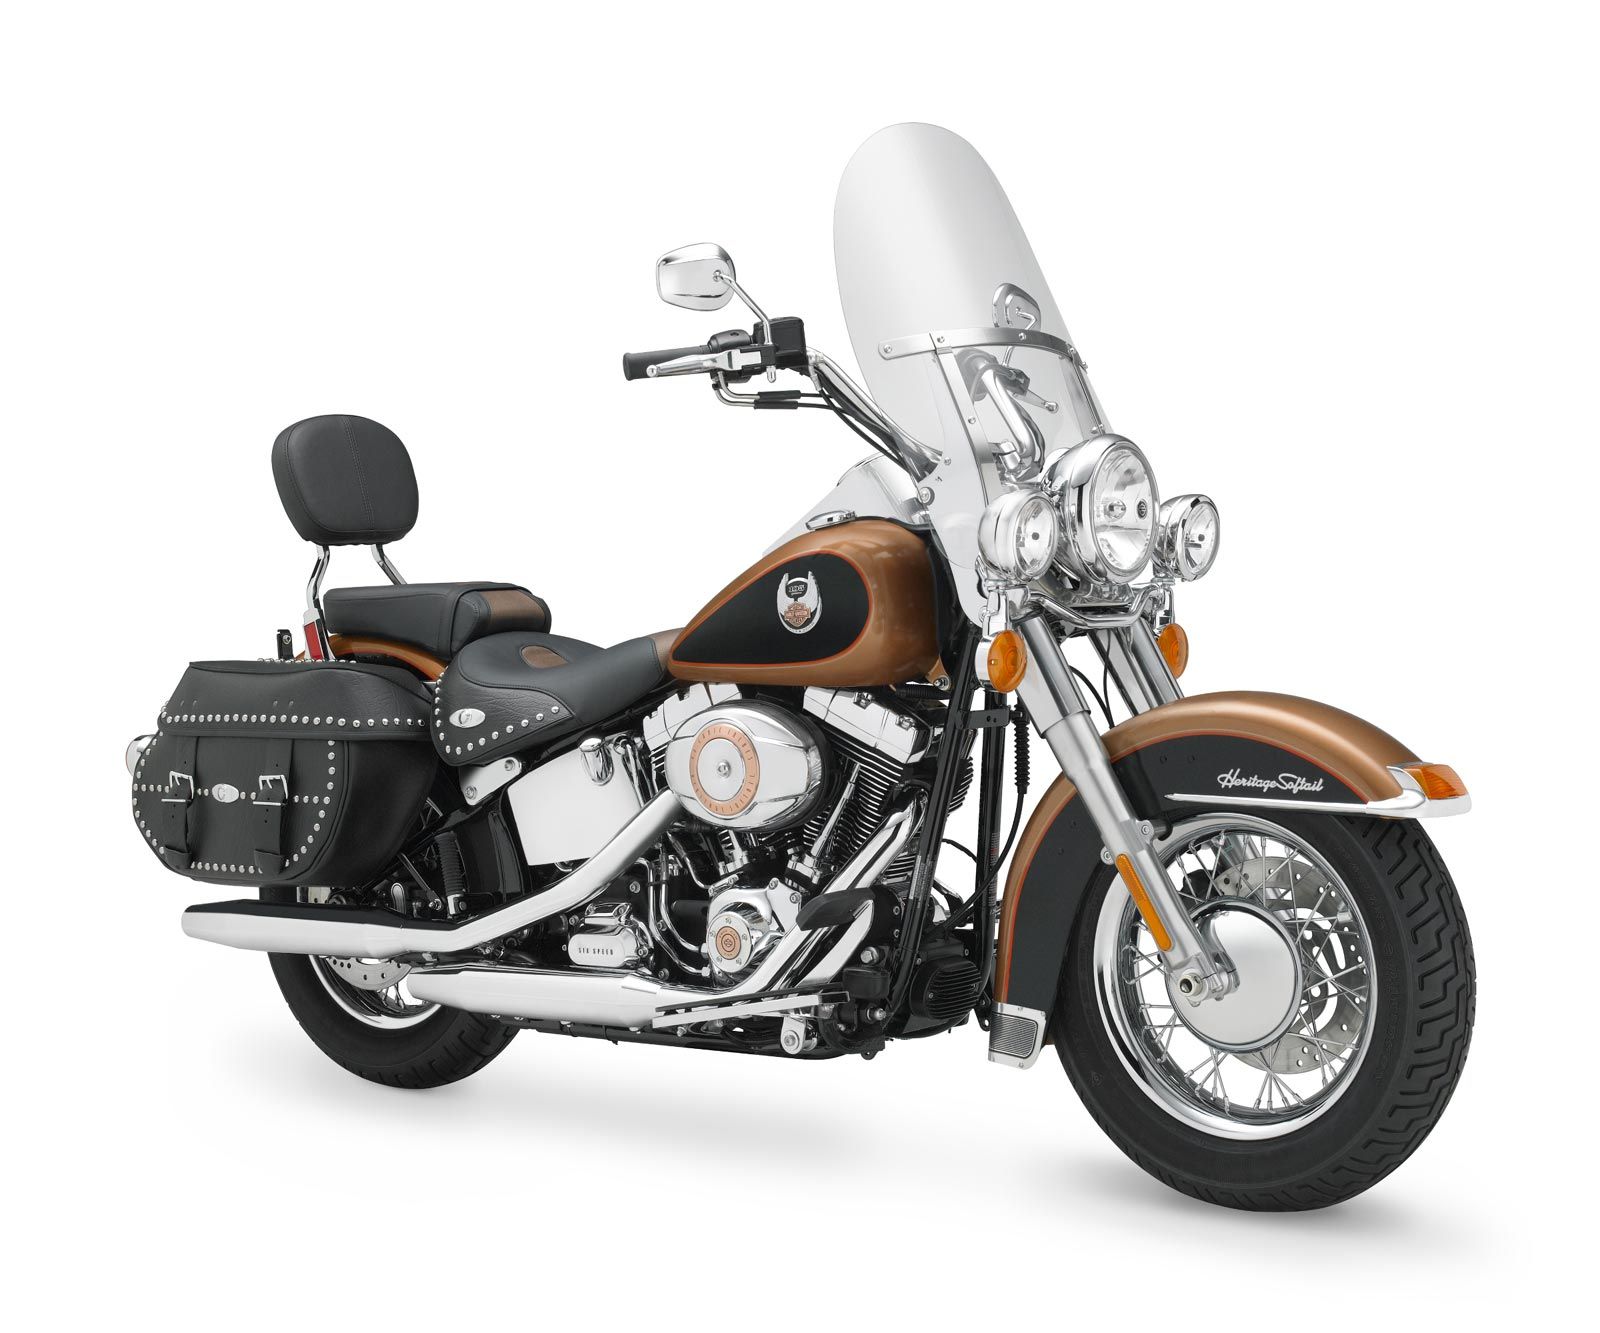 Harley Davidson Softail Deluxe Specs